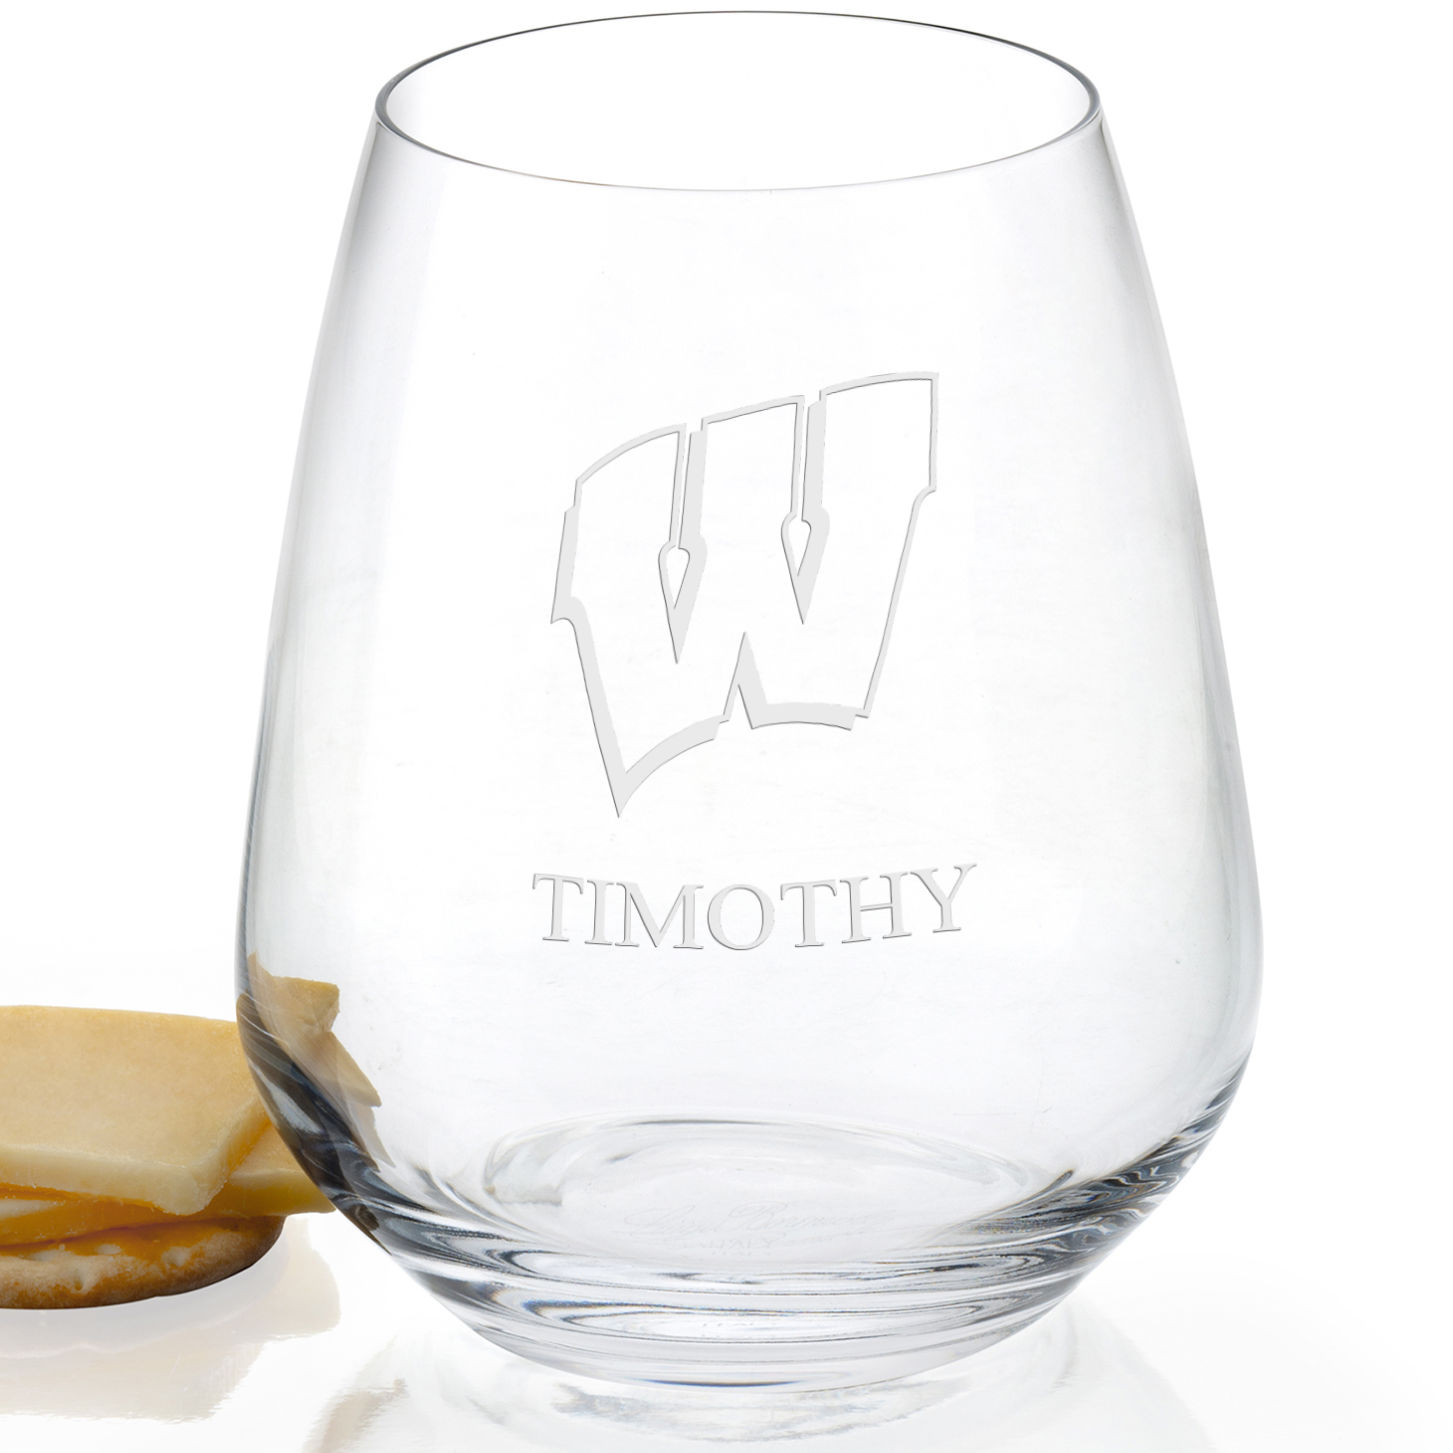 Wisconsin Stemless Wine Glasses - Set of 2 - Image 2